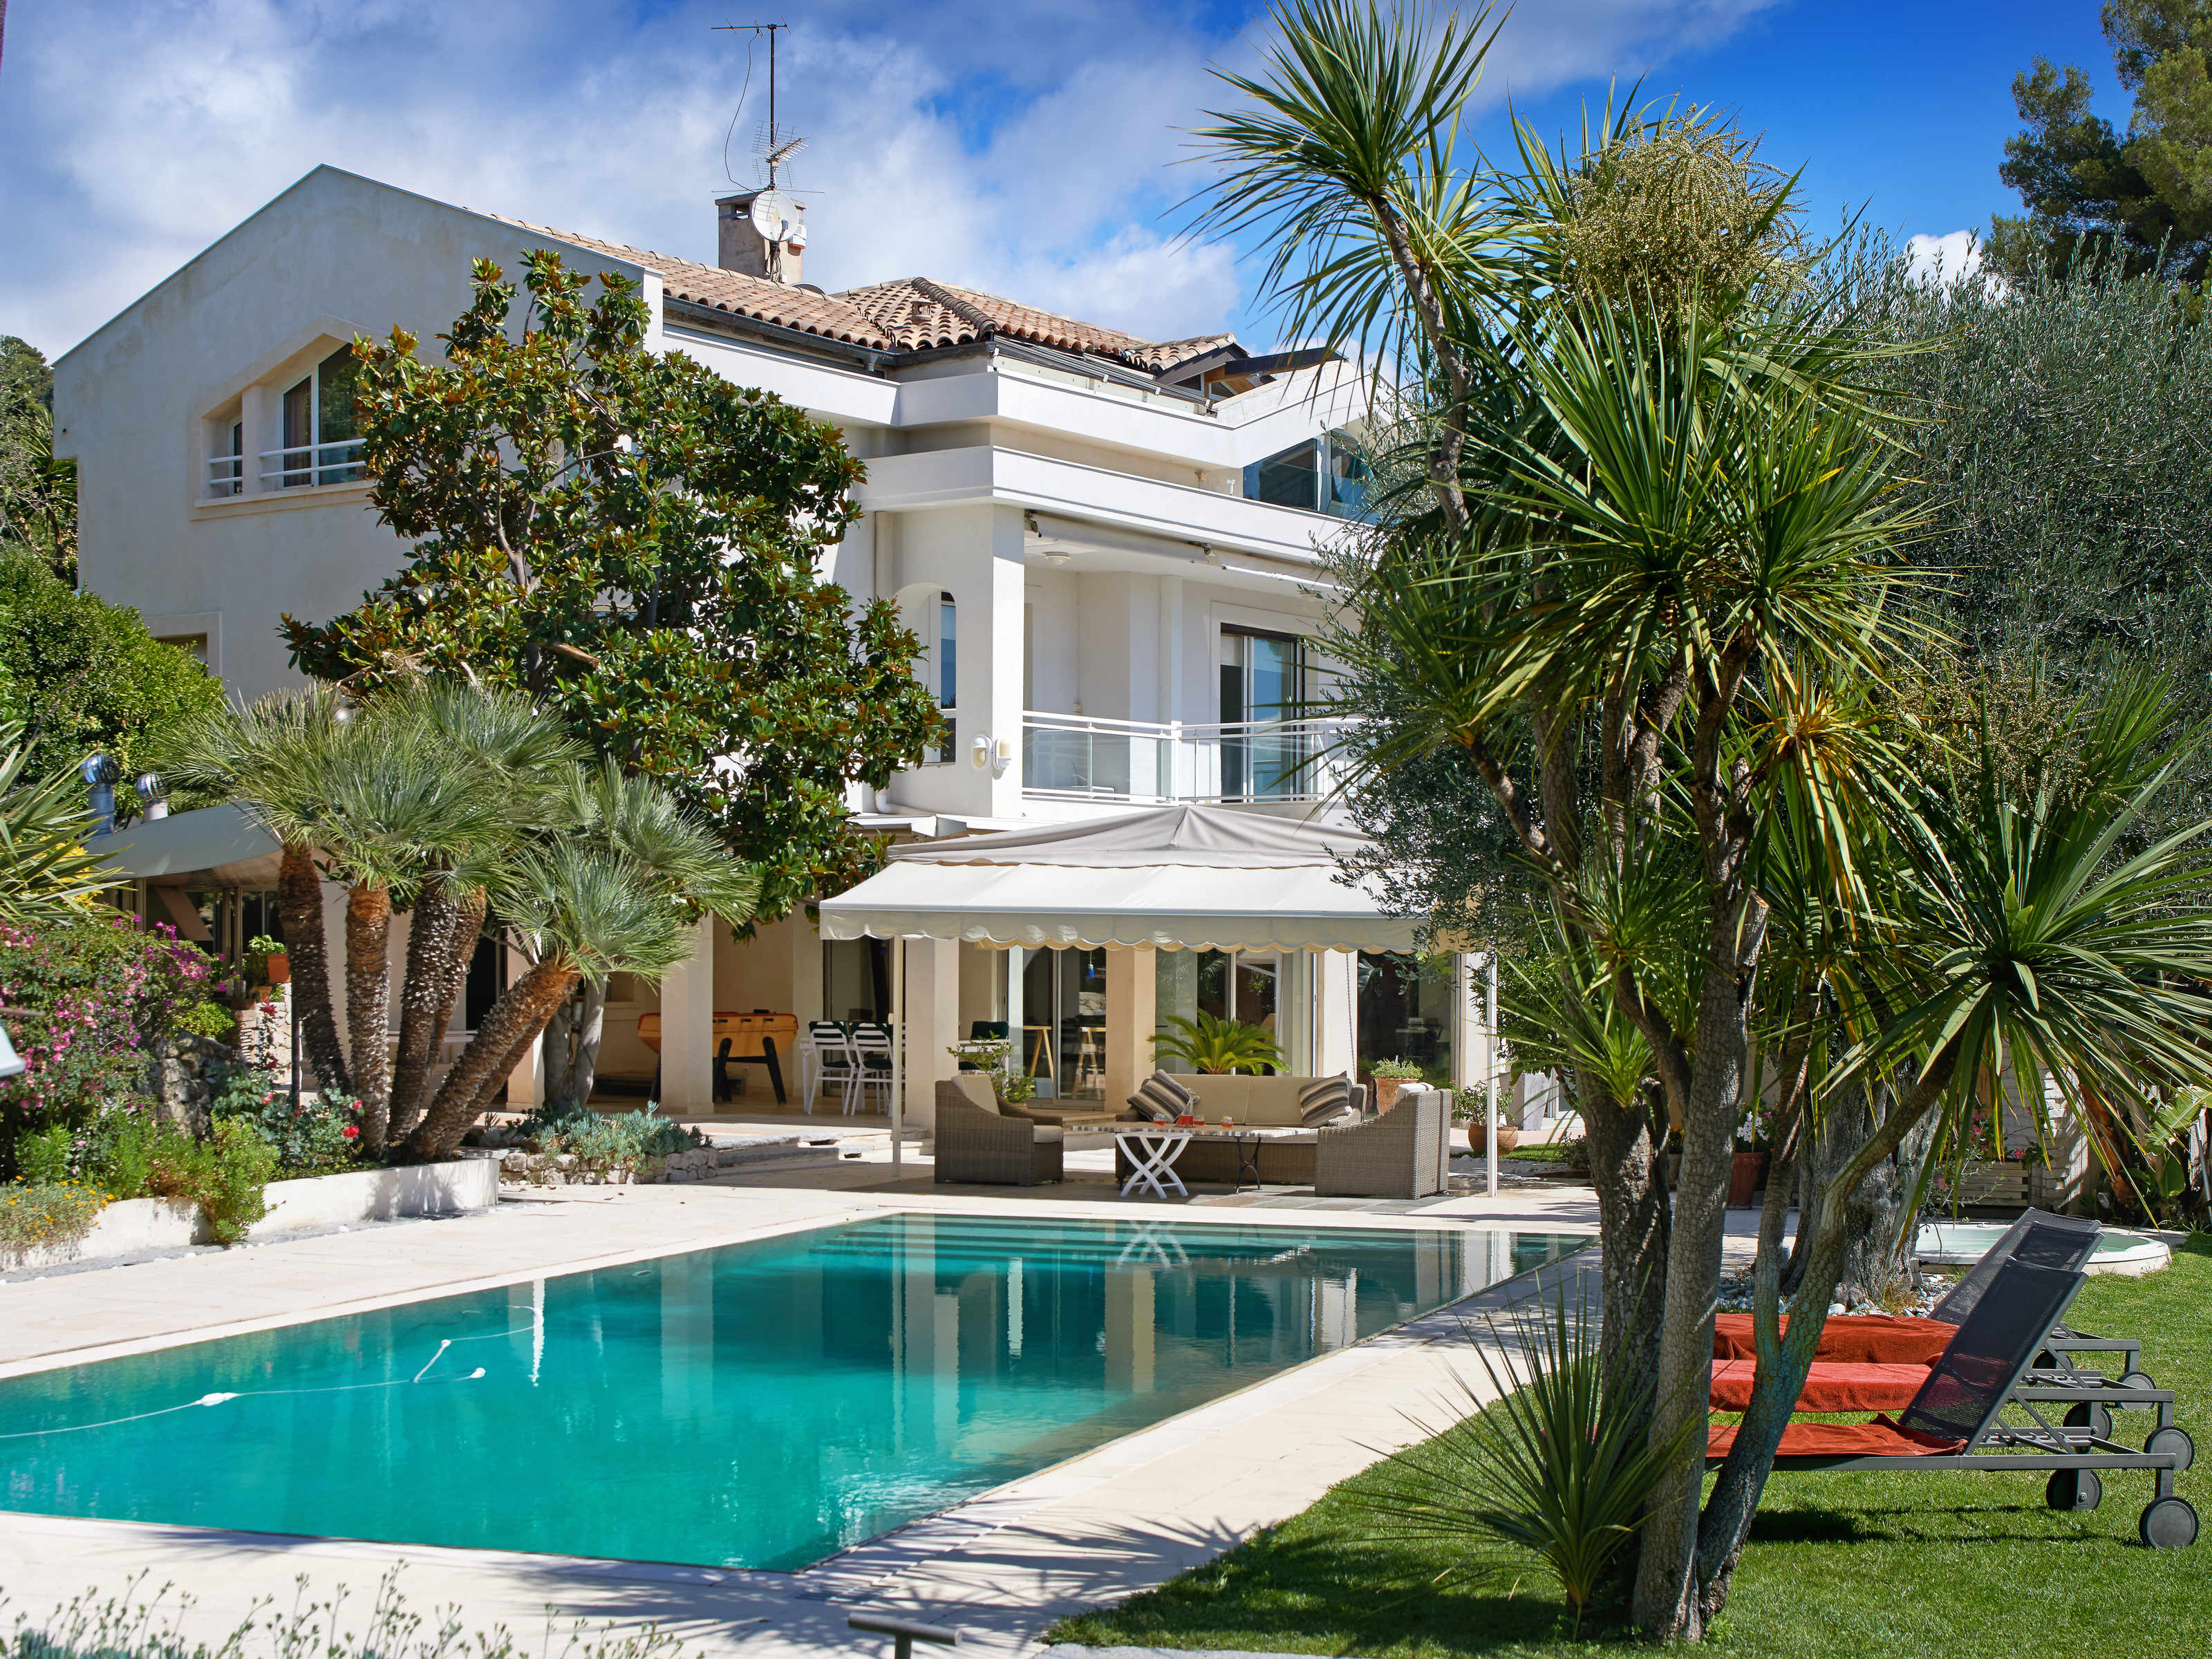 Other Residential for Sale at Spacious luxury villa with sea views and beautiful flat garden Roquebrune Cap Martin, Provence-Alpes-Cote D'Azur 06190 France